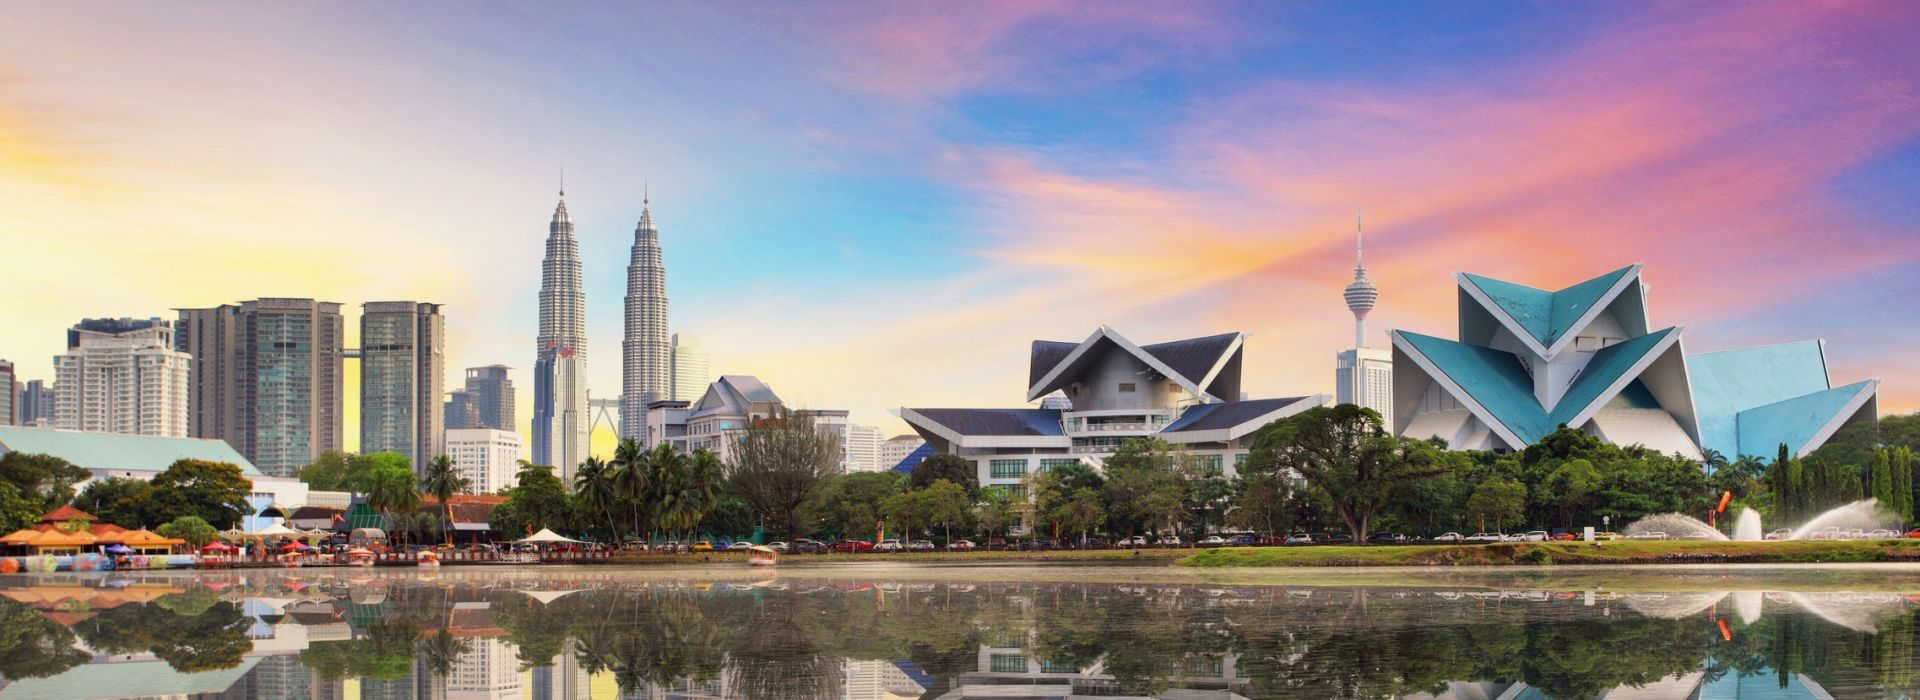 Sightseeing, attractions, culture and history Tours in Kuala Lumpur